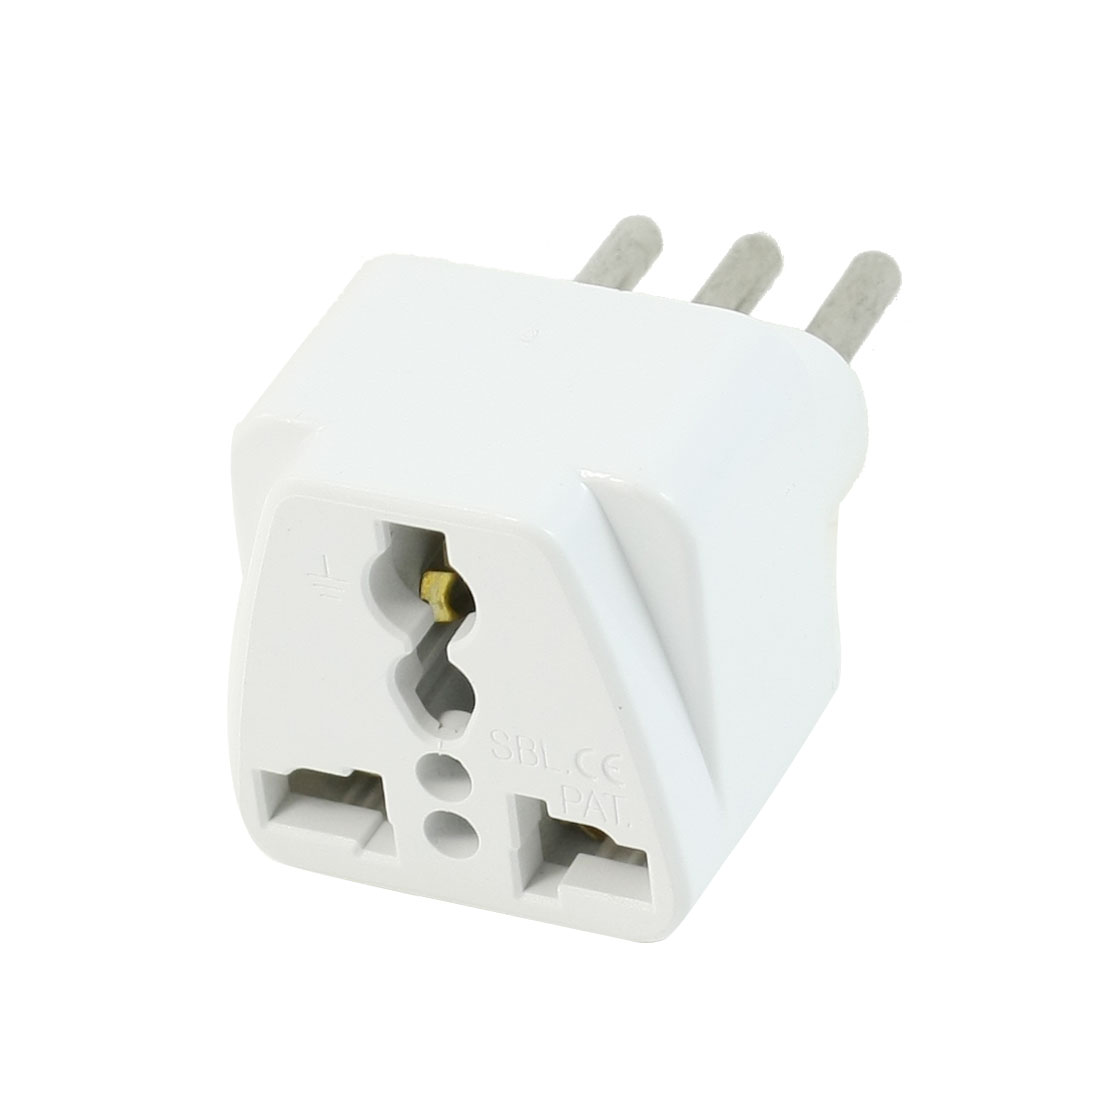 AC 250V 10A UK AU US Socket to Italian 3 Terminals Travel Plug Adapter Converter